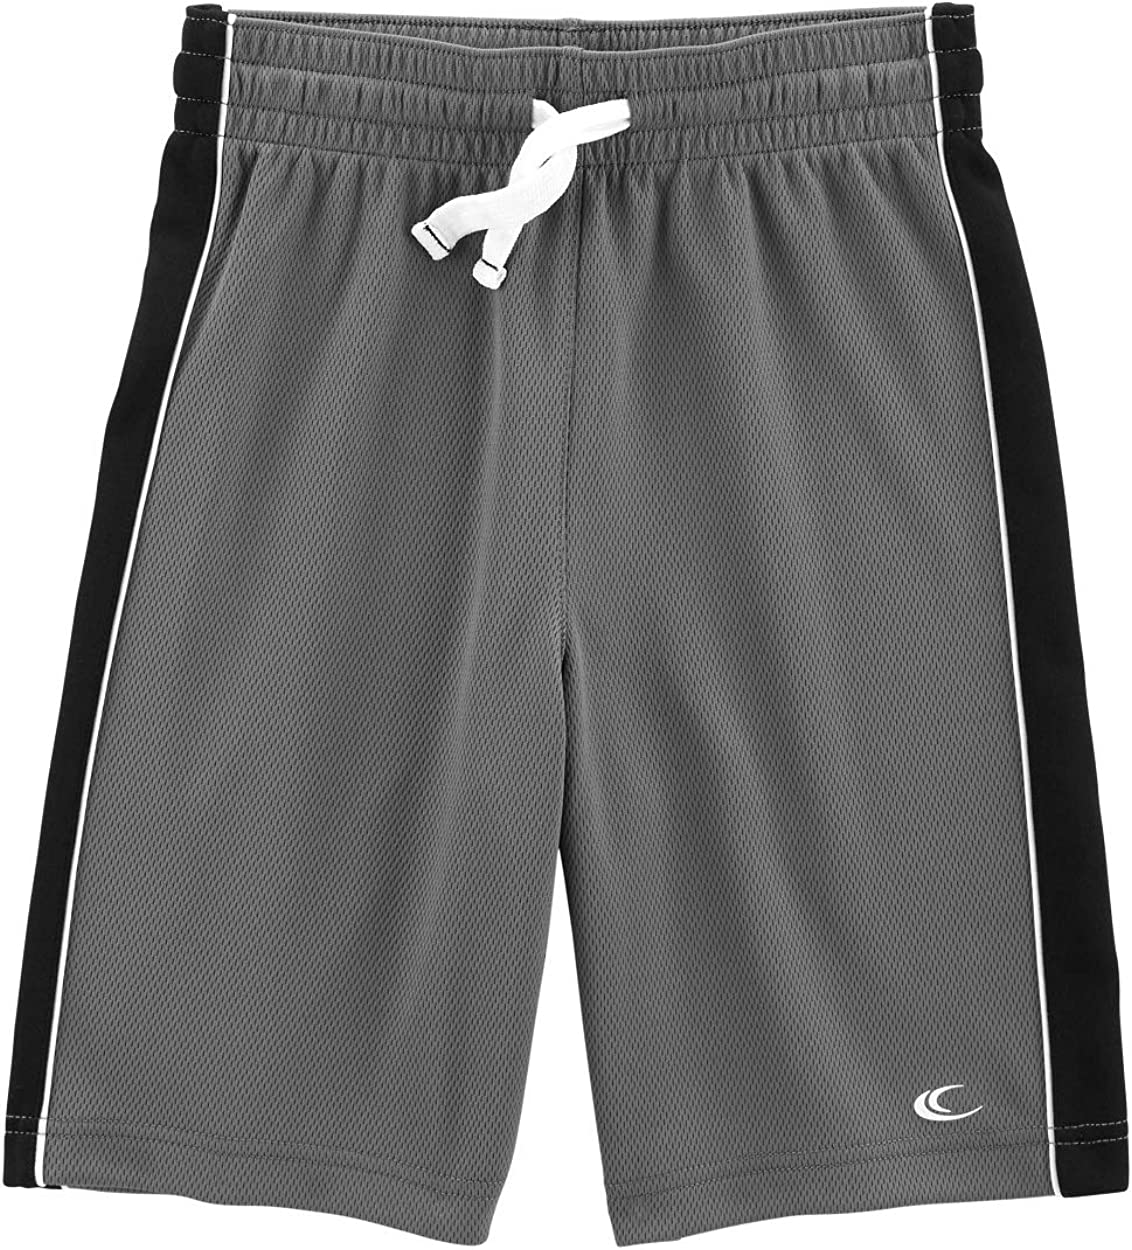 Carter's Boys Mesh Pull-On Athletic Shorts